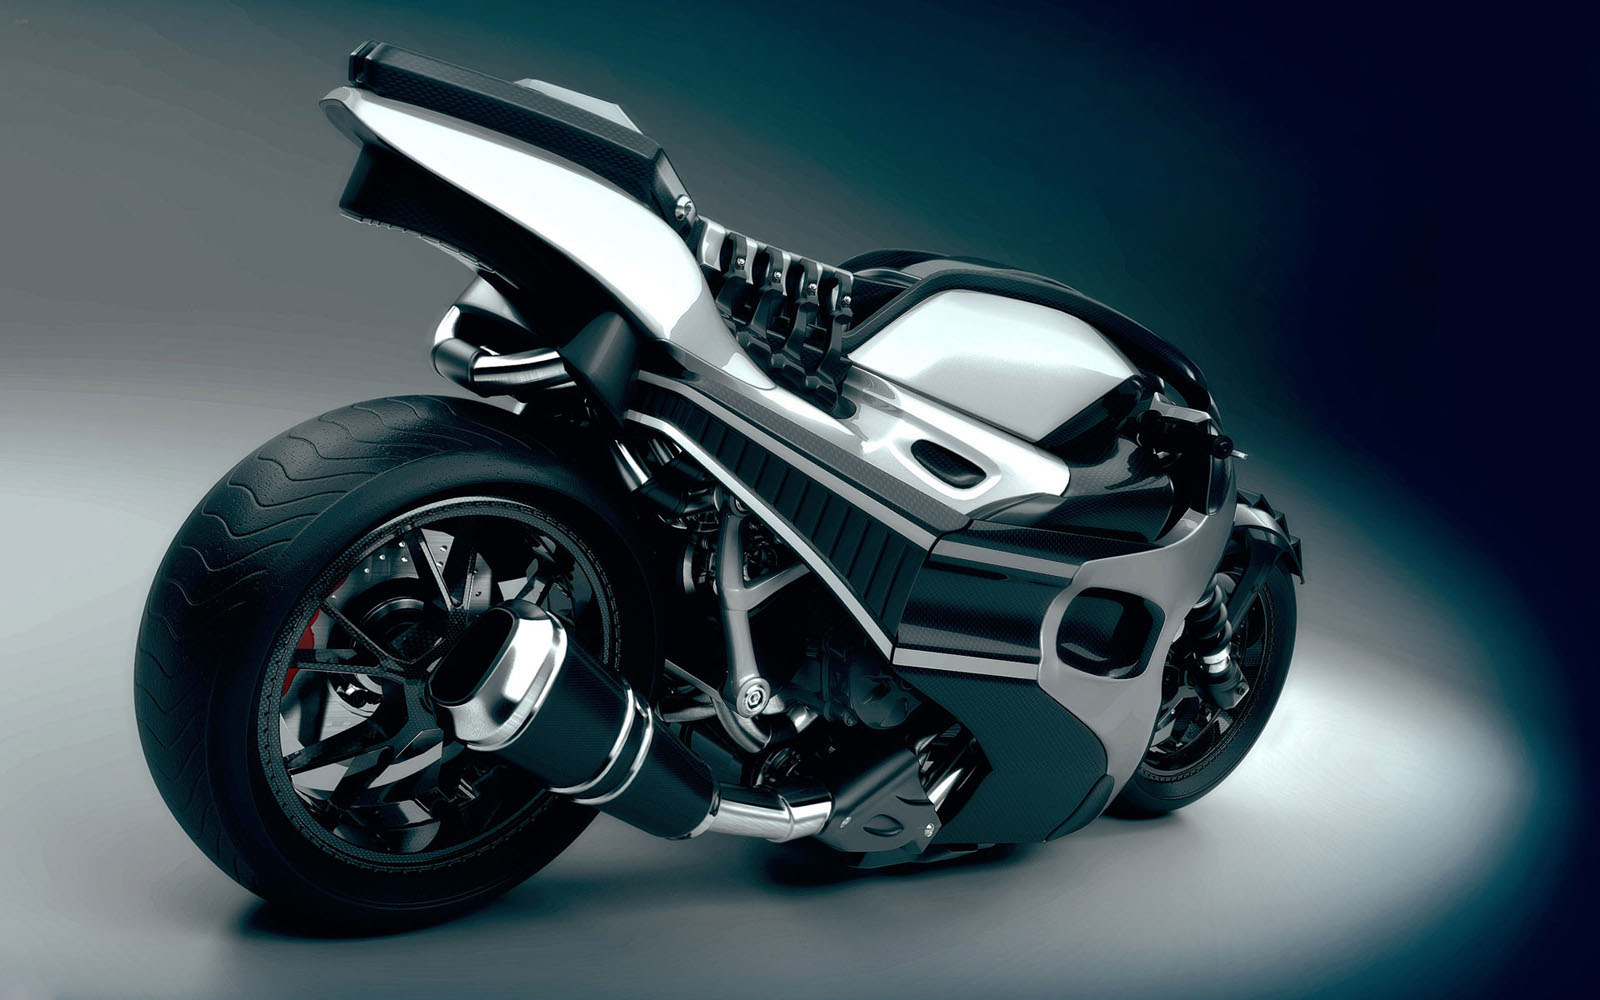 Tag Bike Wallpapers Backgrounds Photos Images andPictures for 1600x1000